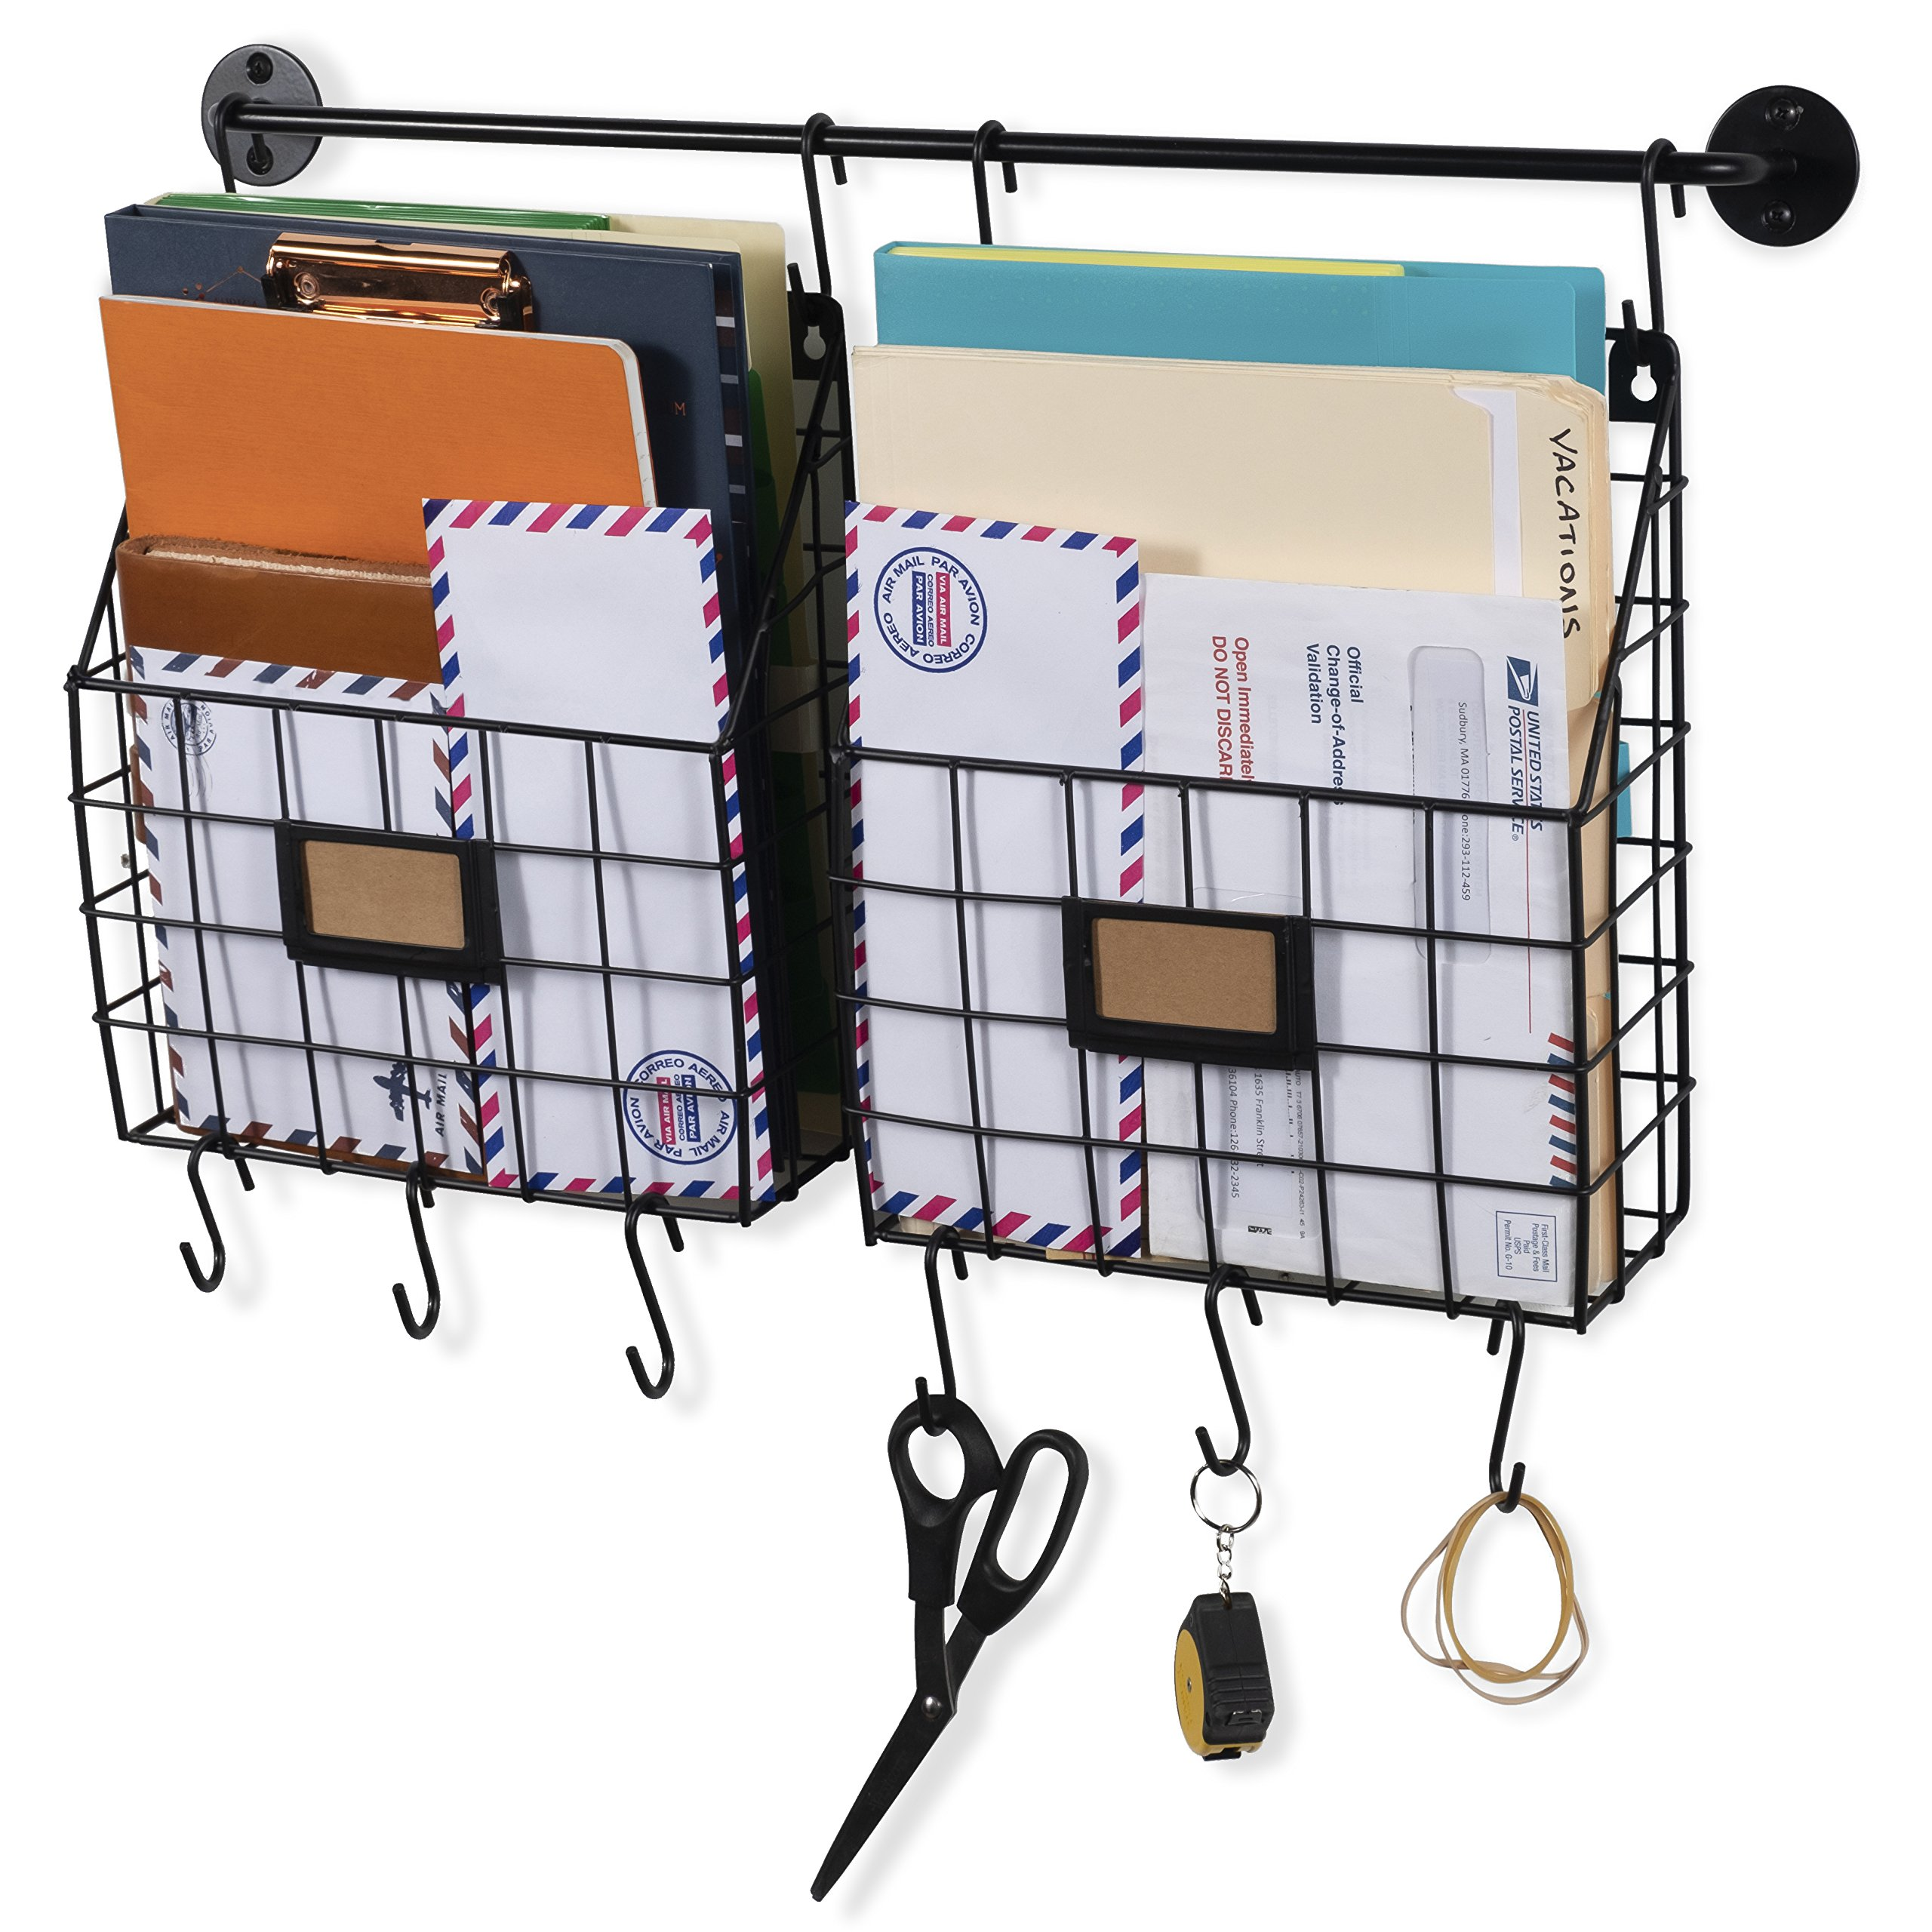 Wall35 Rivista Wall Mounted Metal Wire Baskets with Rail and Hooks - Rustic Design Multi-use Hanging File Folder - Mail Entryway Organizer - Kitchen Utensil Storage - Black by Wall35